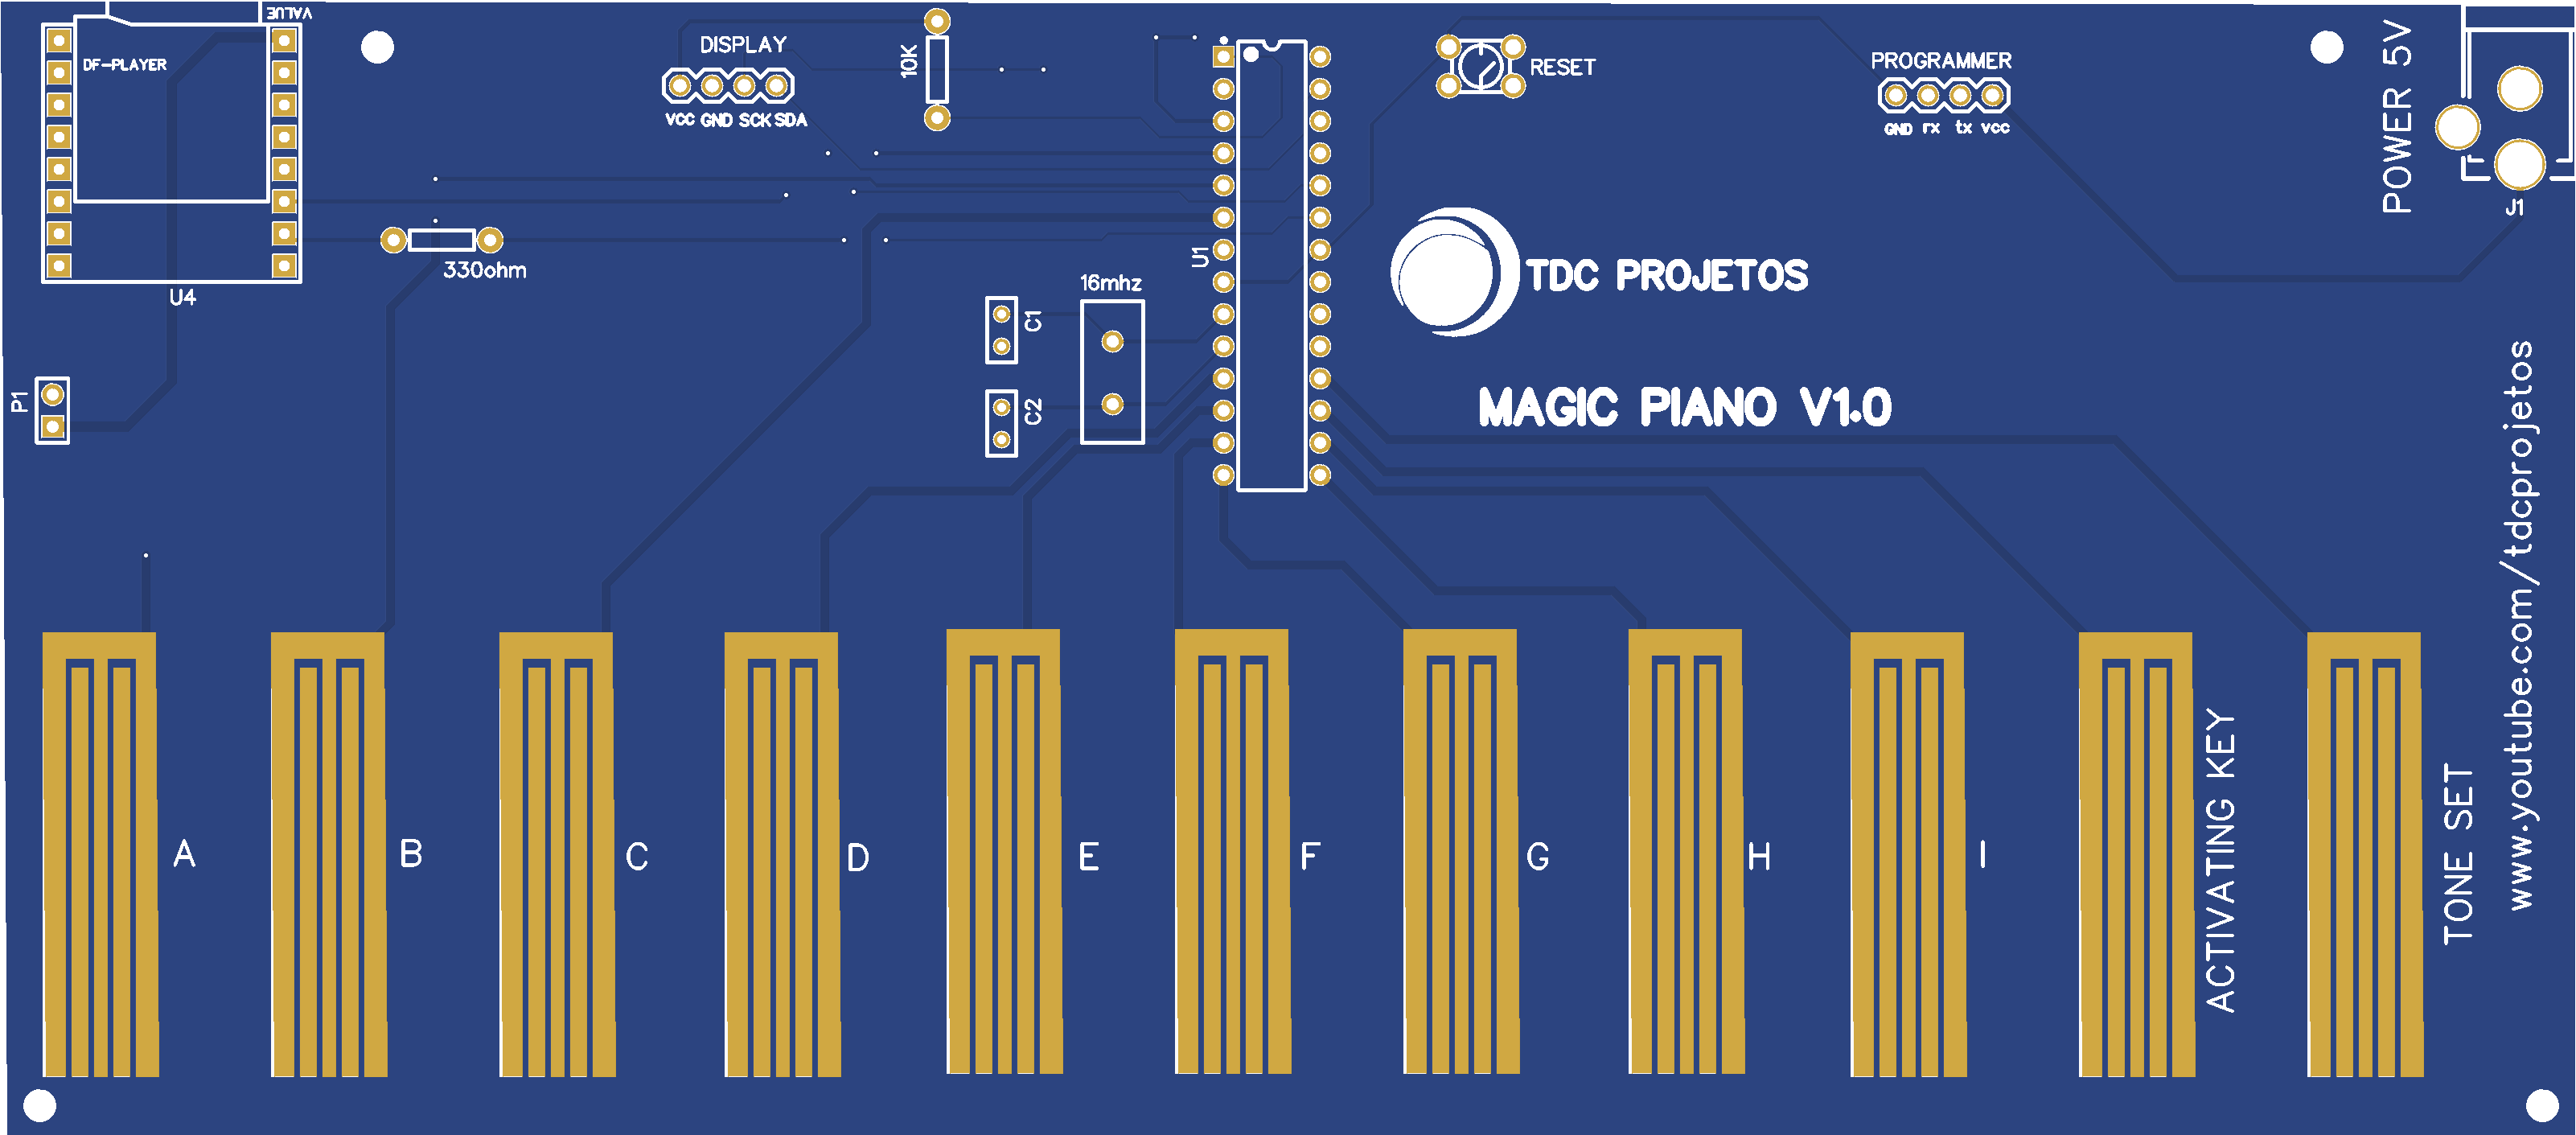 TDC PROJETOS Magic Piano